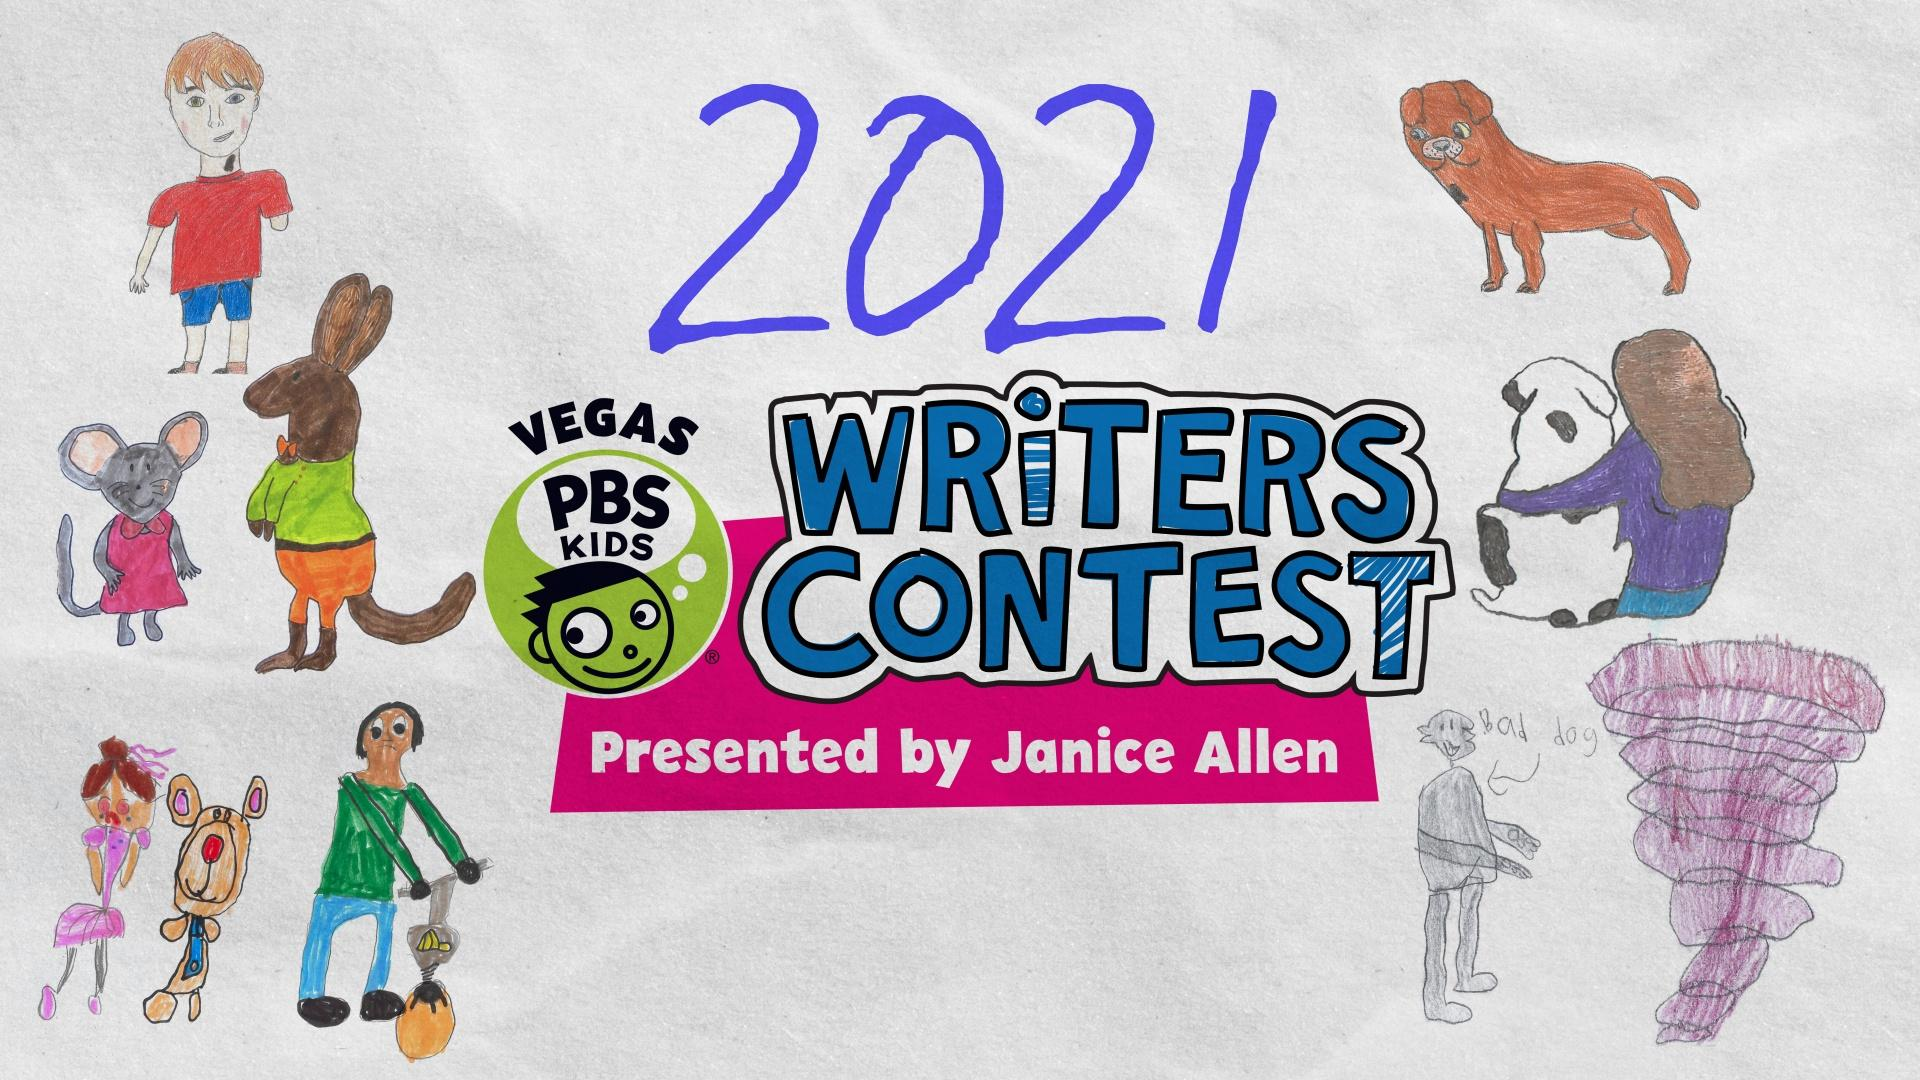 2021 VEGAS PBS KIDS Writers Contest Presented by Janice Allen